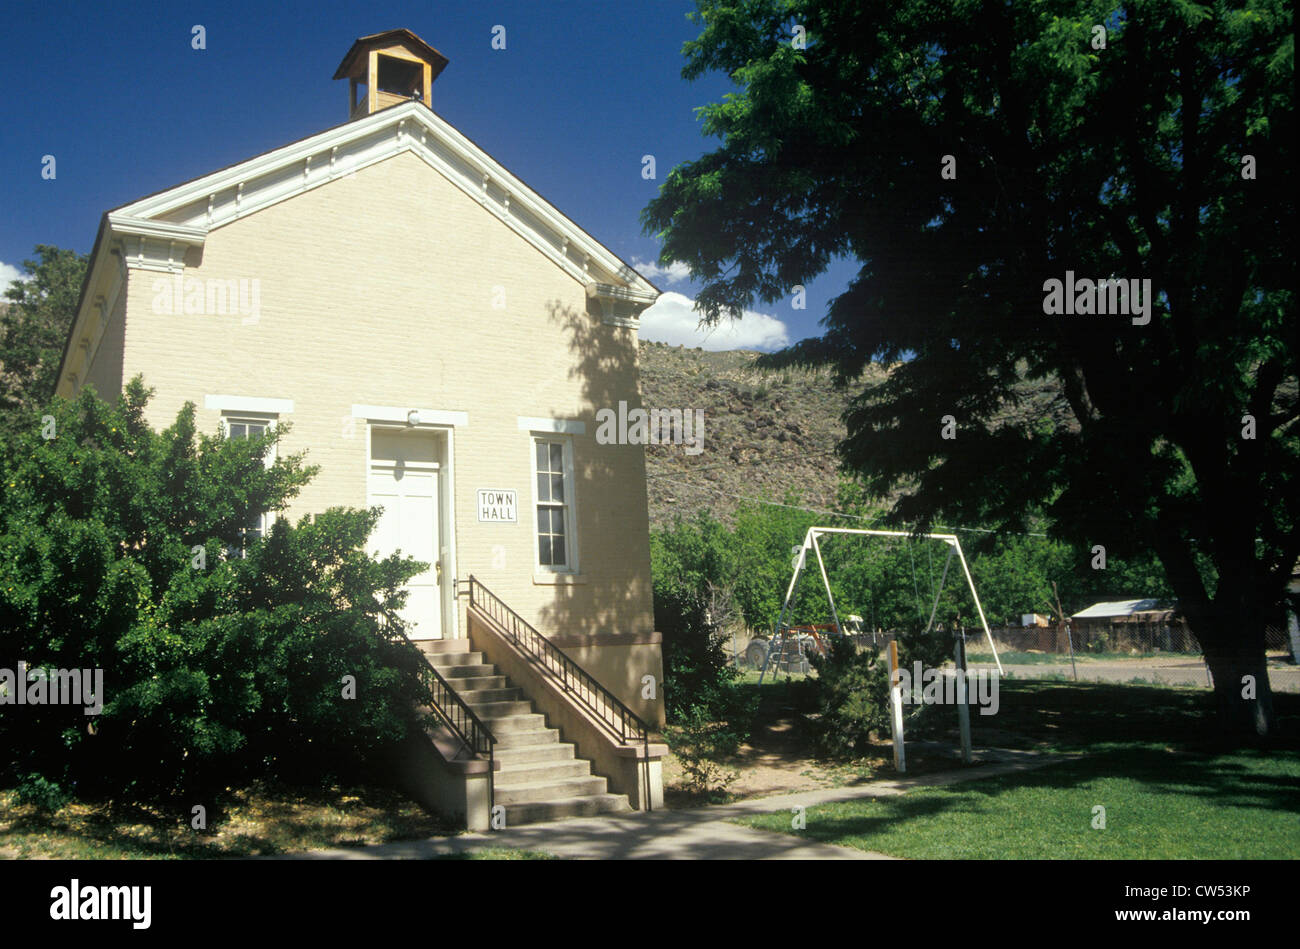 Town hall, Toquerville, UT - Stock Image